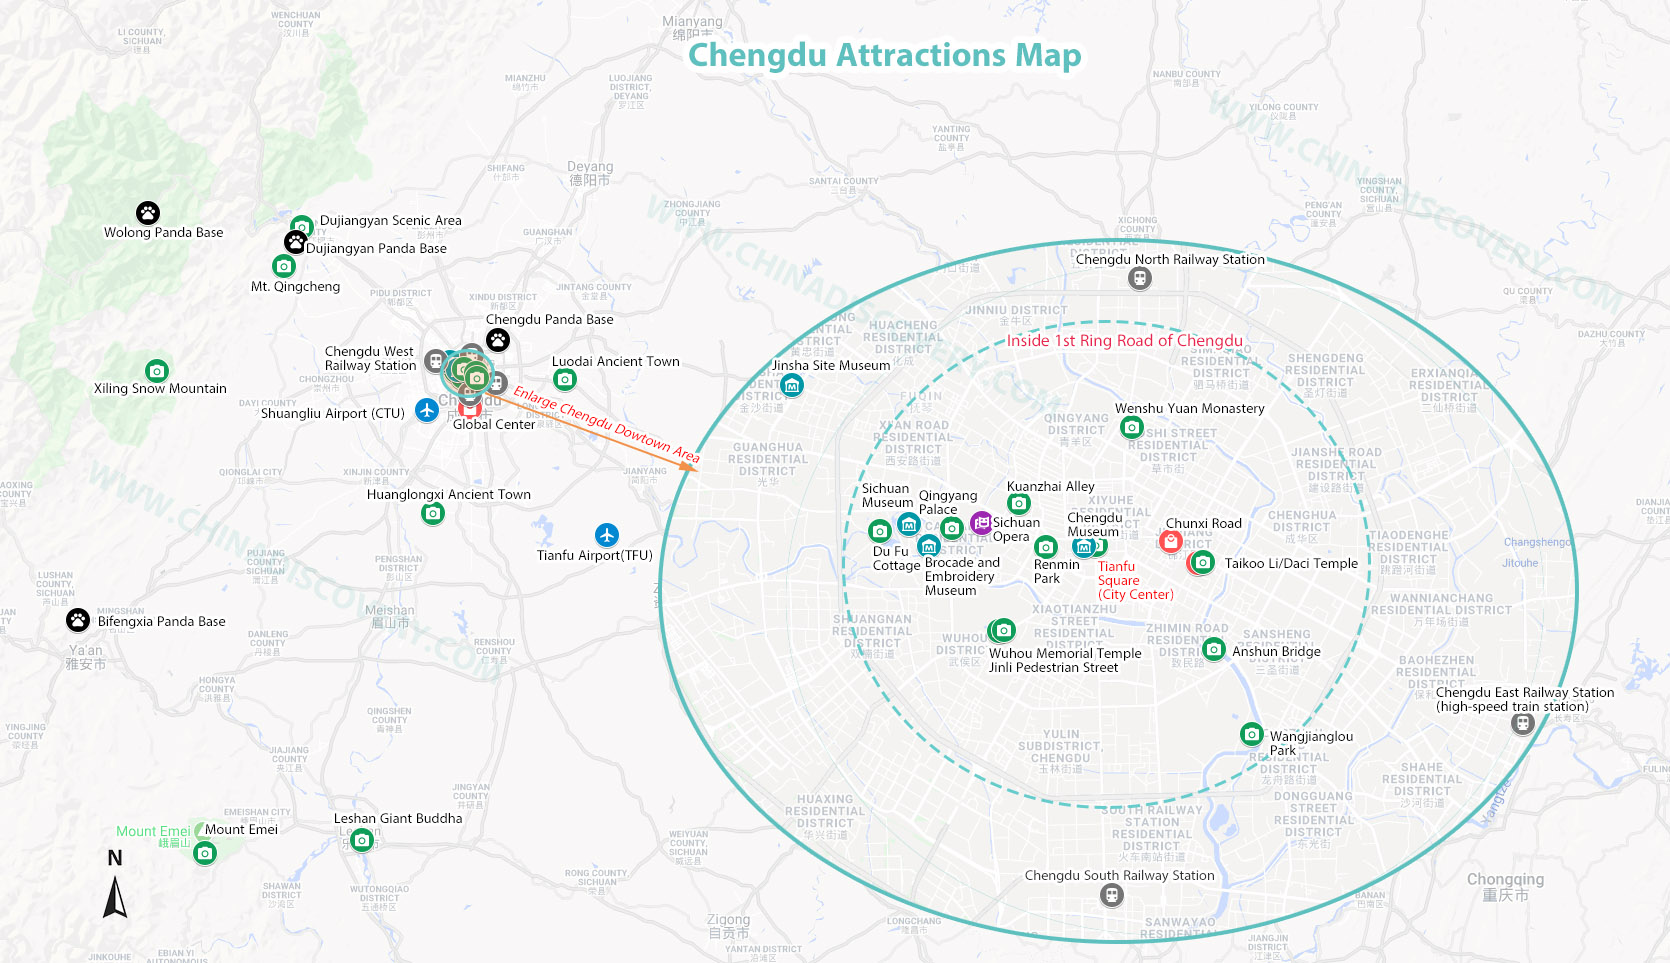 Chengdu Attractions Map